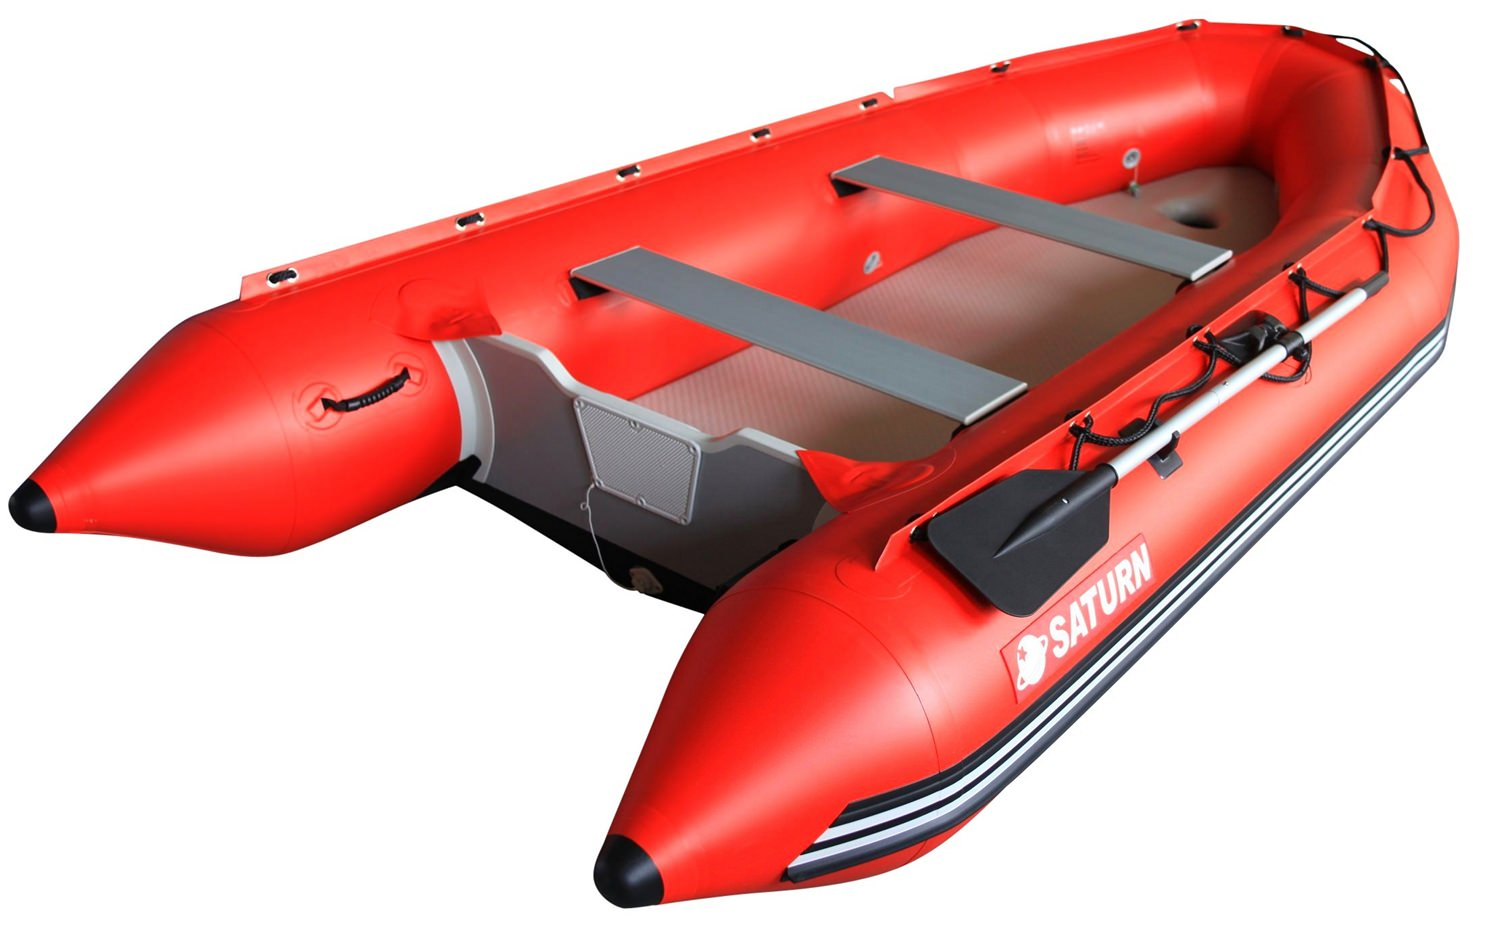 Saturn Inflatable Motor Boat Dinghy Raft SD385 by Saturn Boats